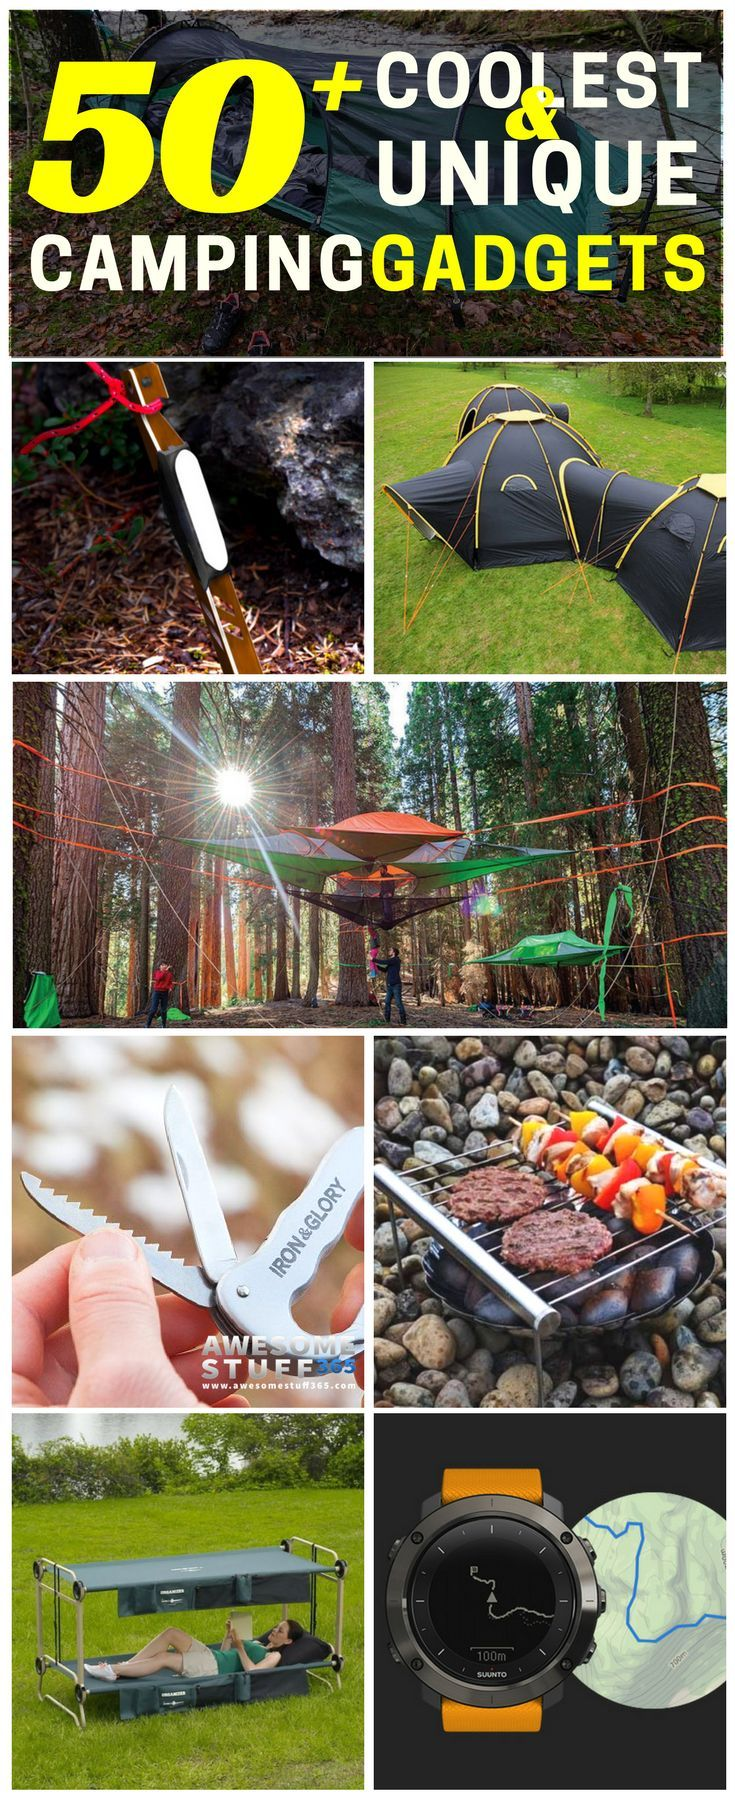 Photo of 75+ Of The Coolest Camping Gadgets & Unique Products For Campers